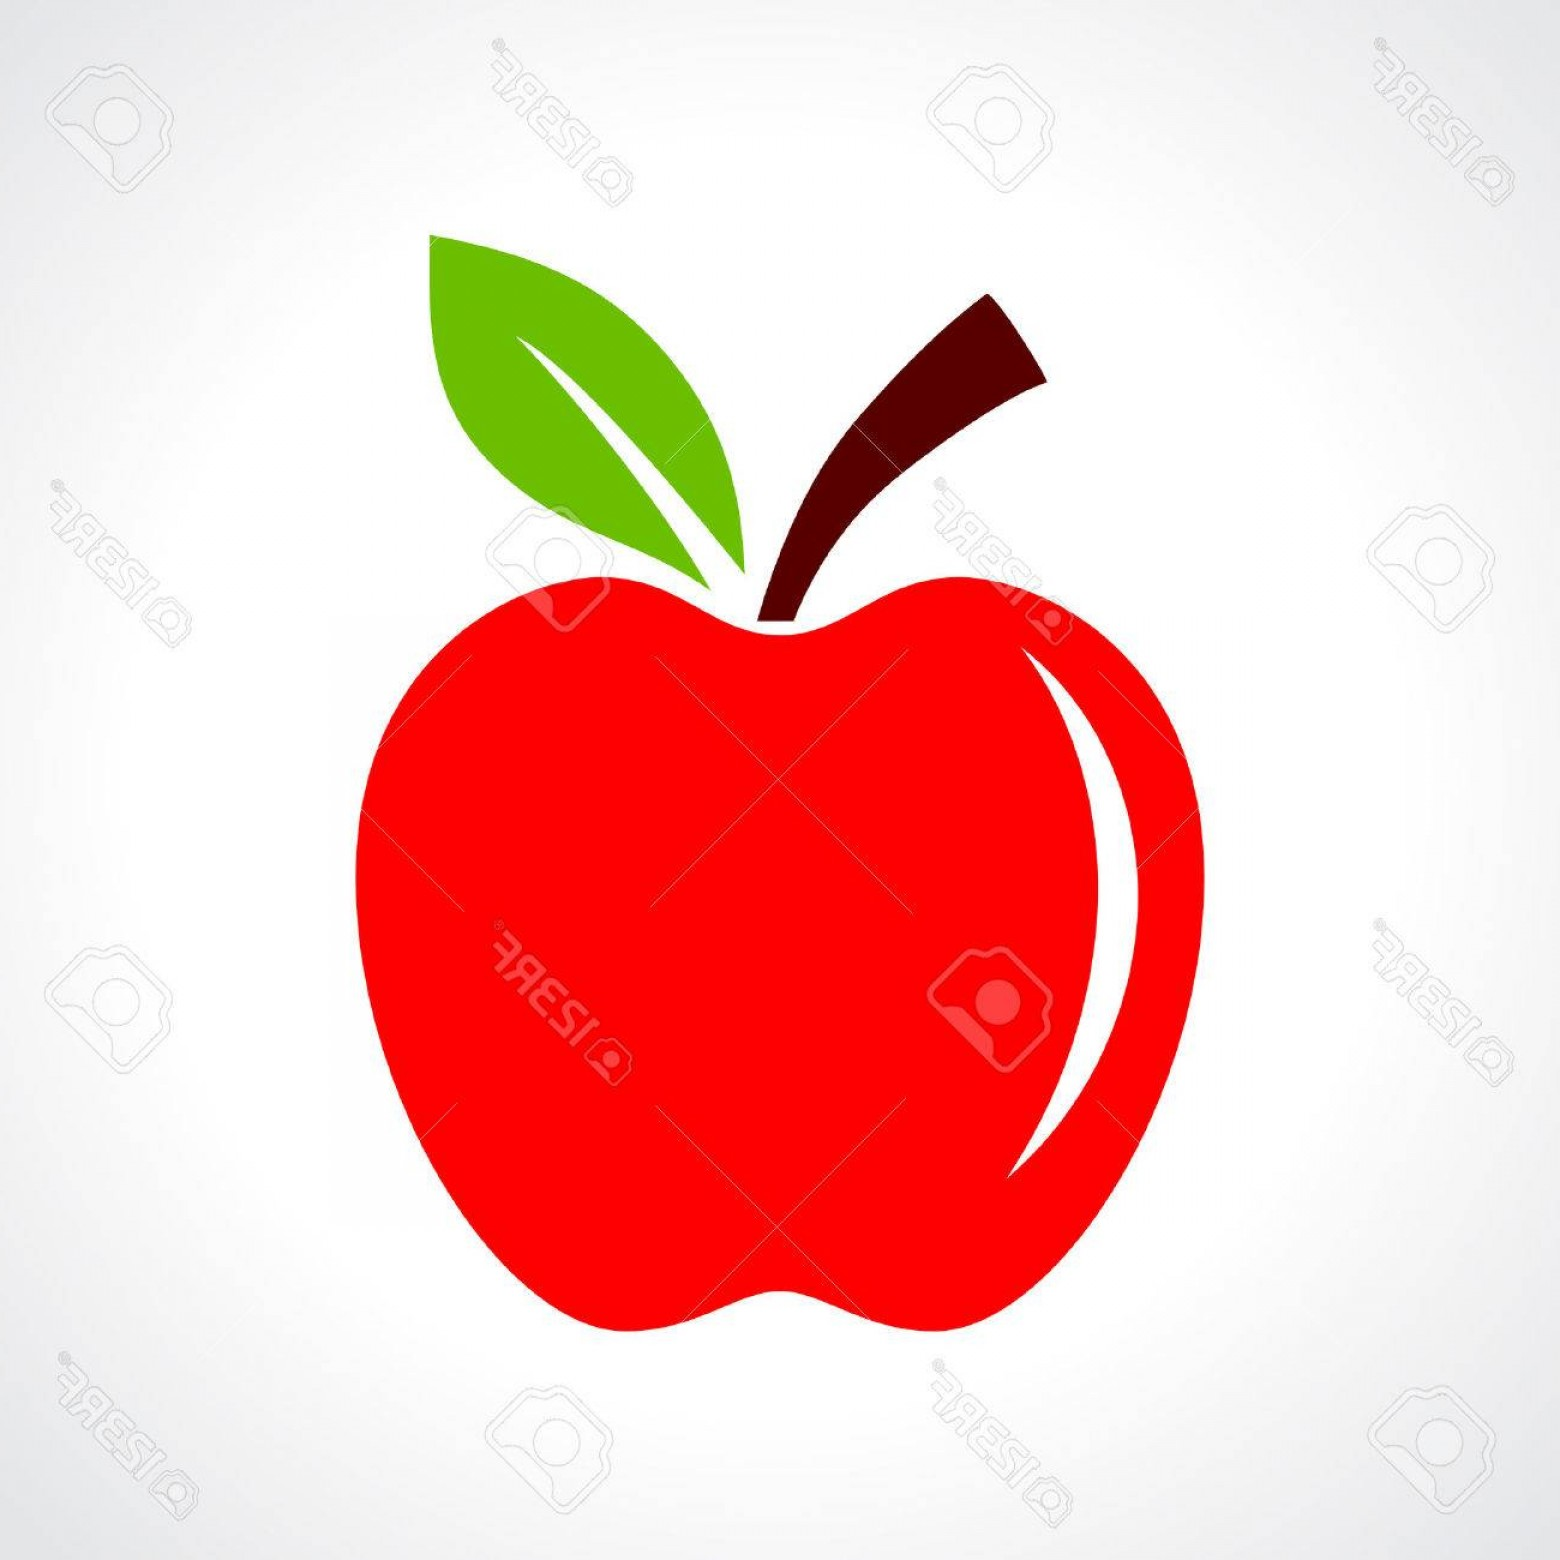 Red Apple Vector Logo: Photostock Vector Red Apple Vector Illustration